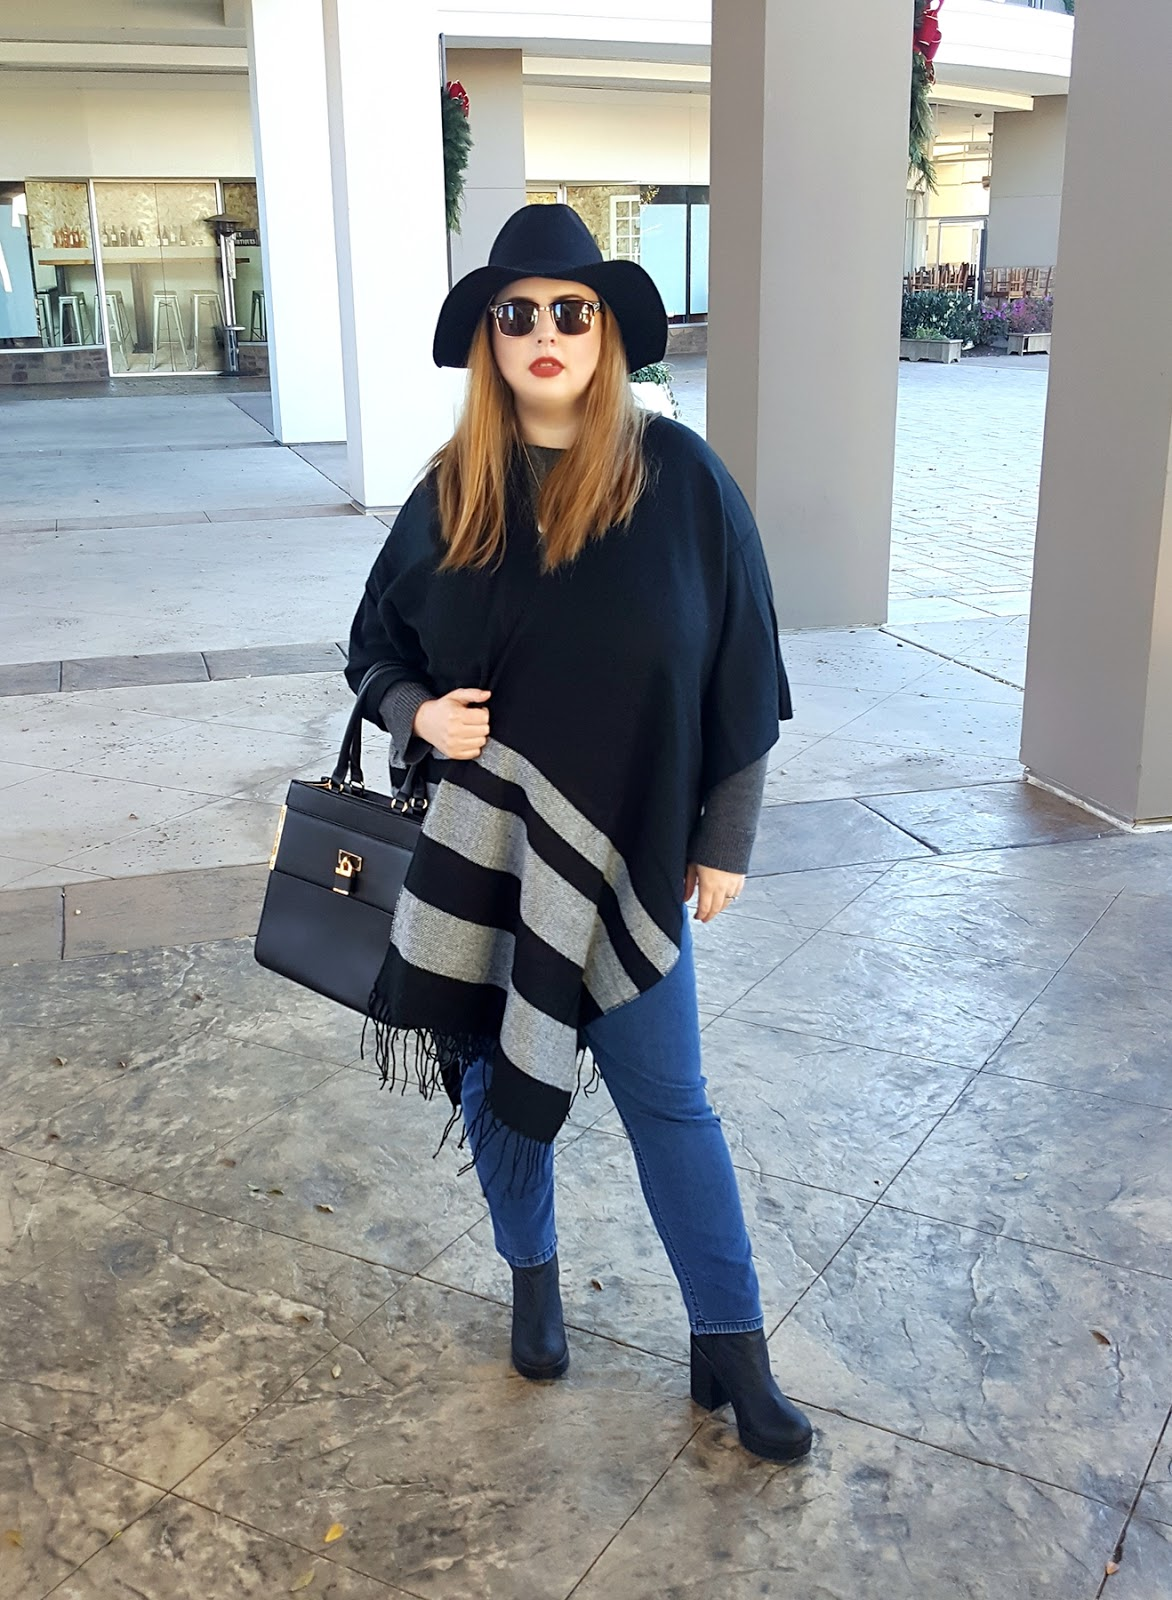 outfit-of-the-day, ootd, tobi-sleepless-nights-black-striped-cardigan, aldo-haronden-bag, h&m-heeled-chelsea-boots, j.jill-smooth-fit-slim-ankle-jeans, target-women's-rancher-hat